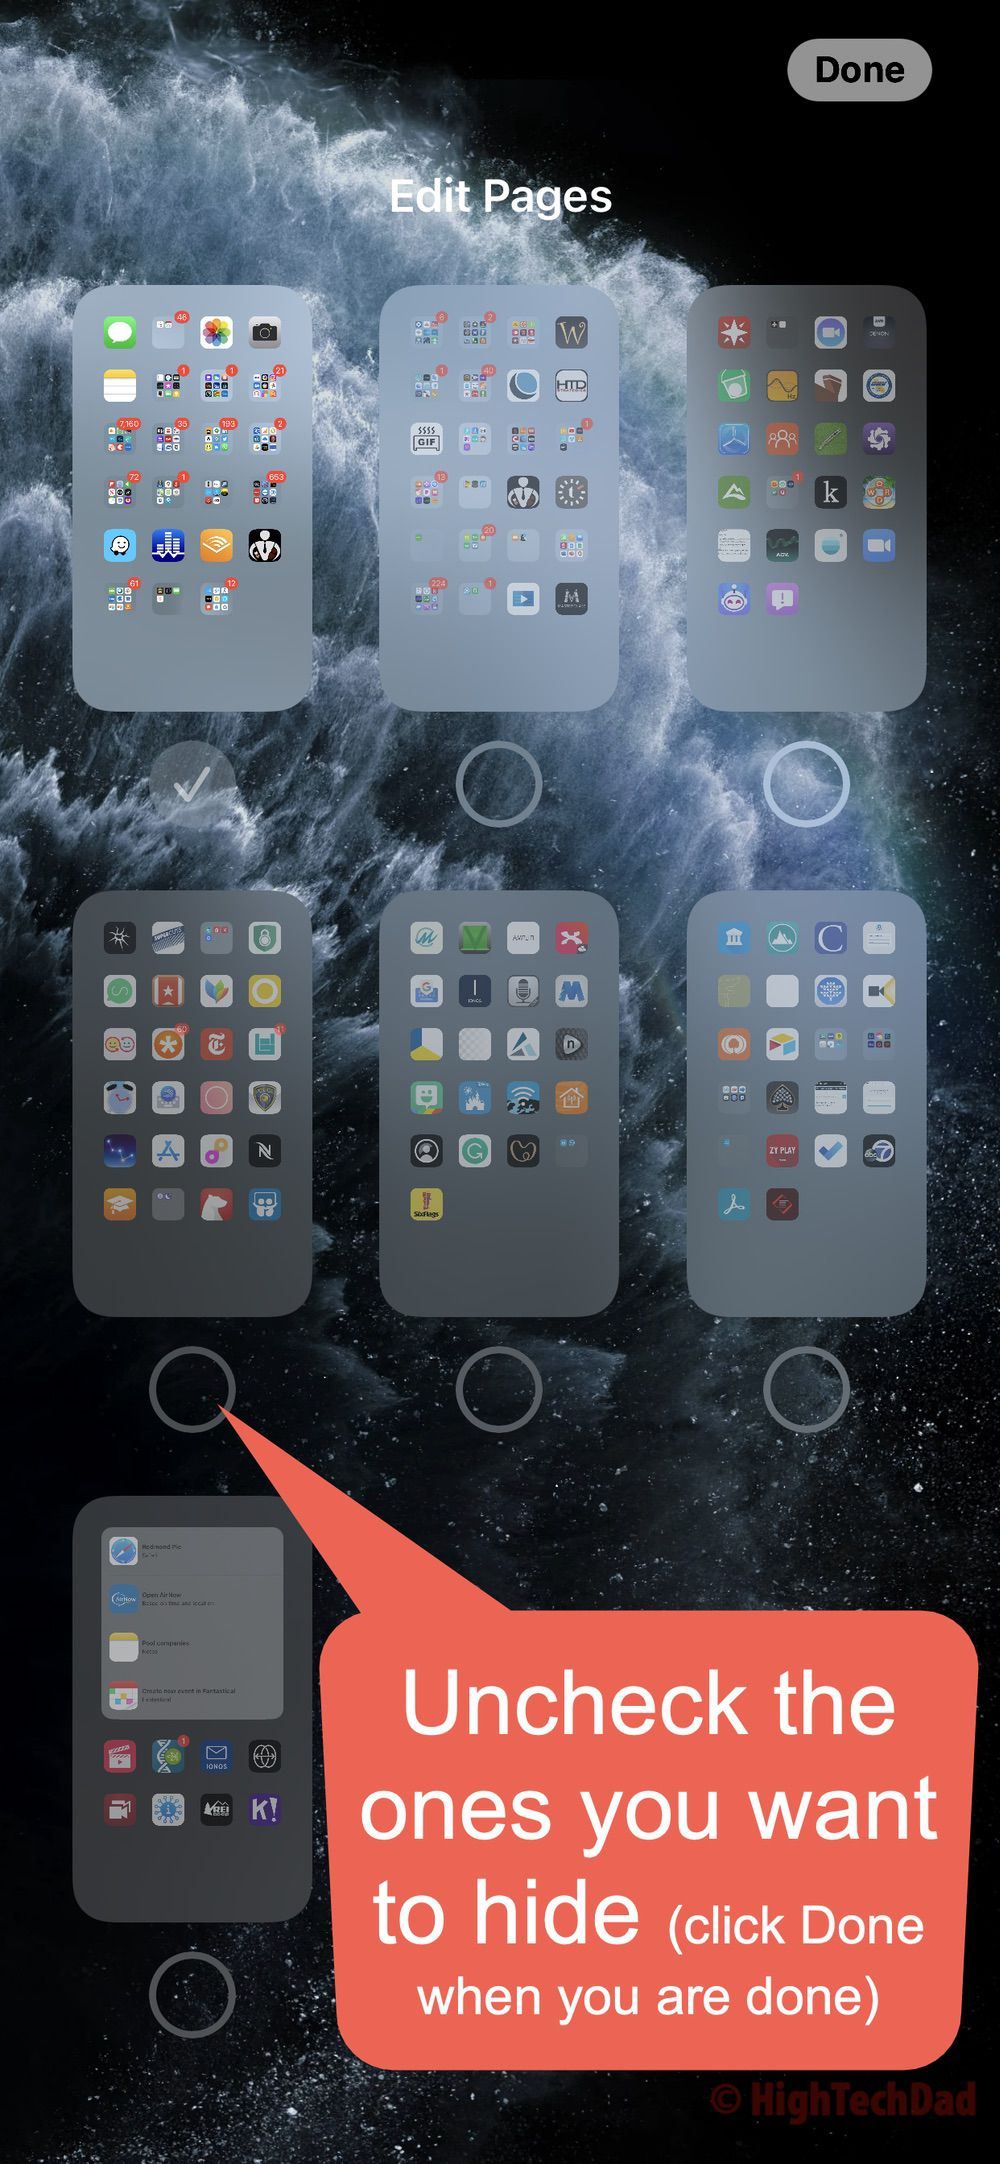 Uncheck pages you want to hide - HighTechDad iOS 14 quick tip